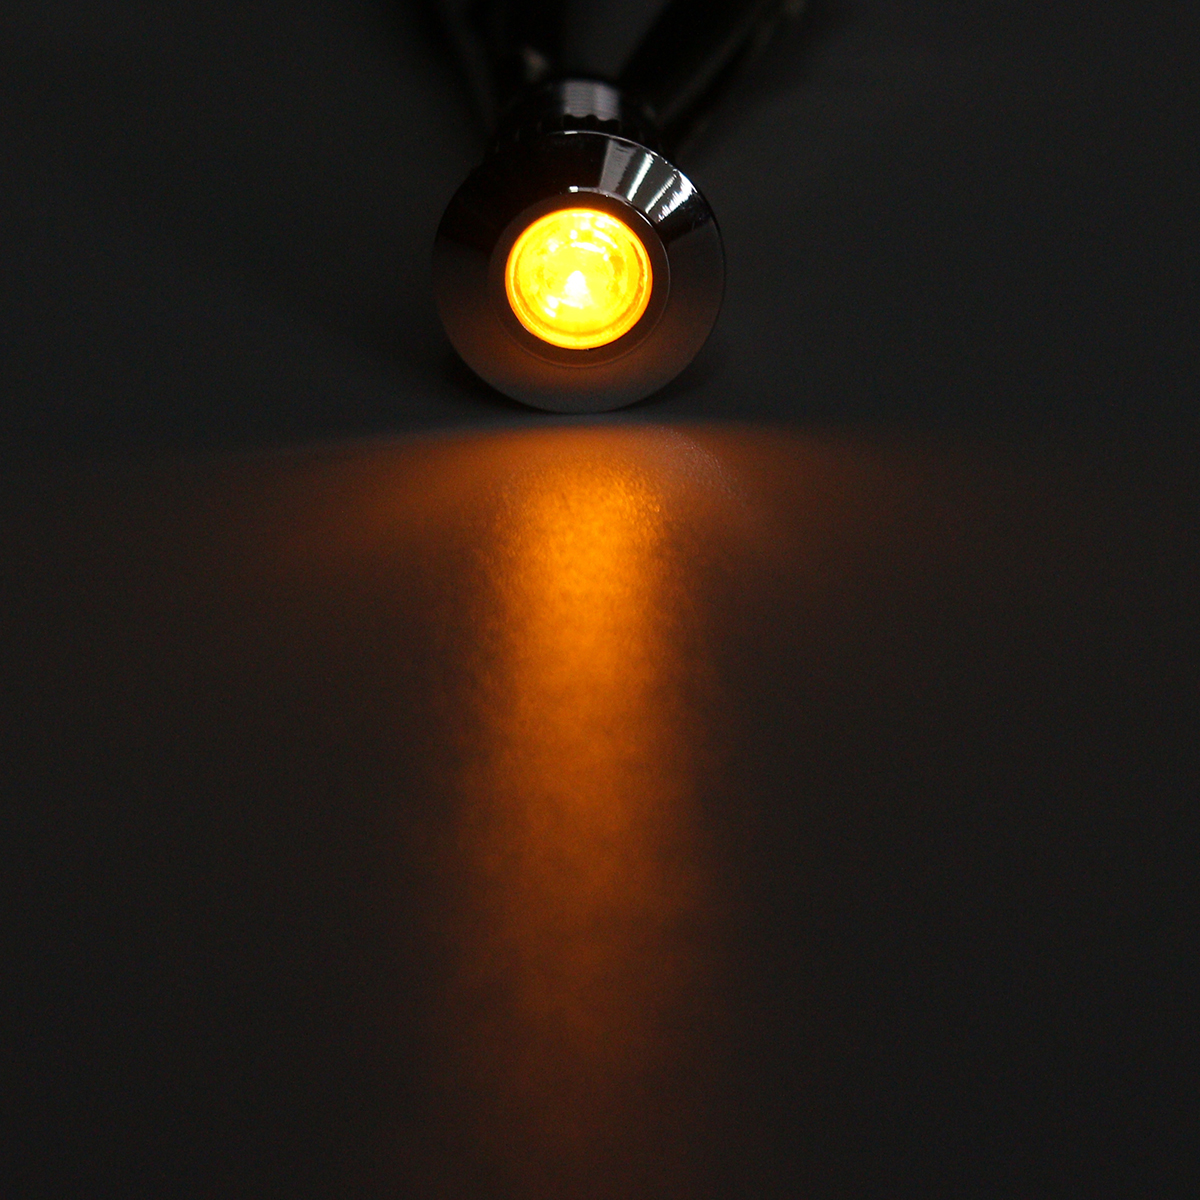 12V Metal 8mm LED Panel Dash Lamp Warning Light Indicator Waterproof